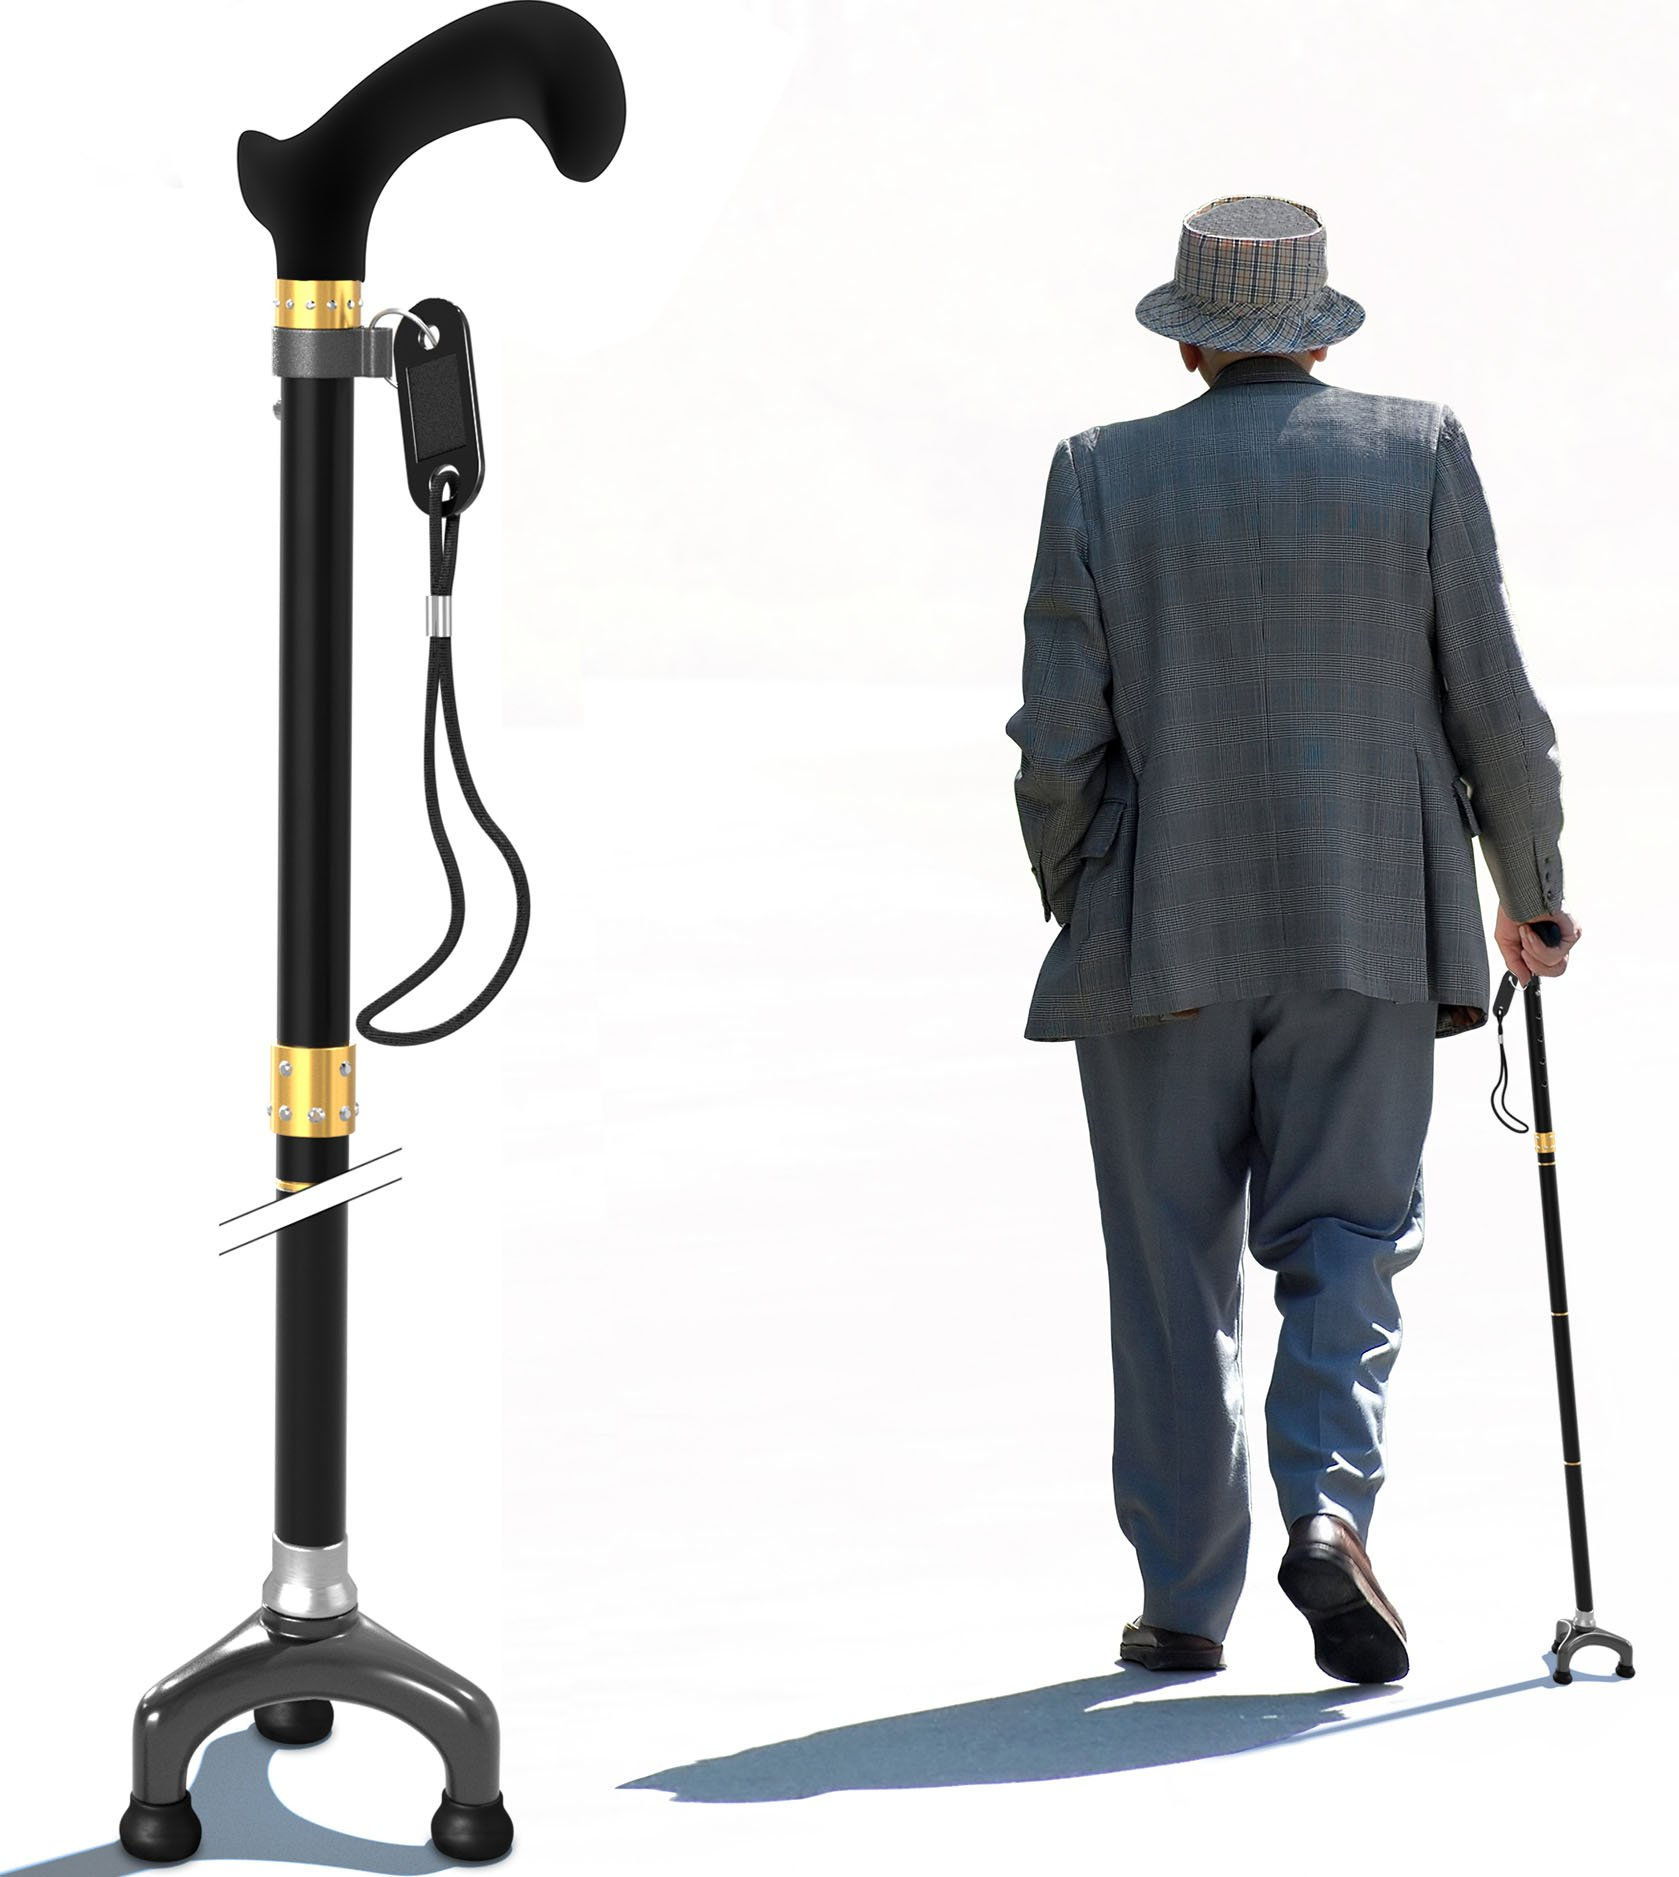 Bago Walking Cane for Men & Women - Folding Stick with Ergonomic Handle and Pivot Tripod Tips - Travel with These Adjustable Canes and Walking Sticks - Pack Small, Lightweight Collapsible (Black)